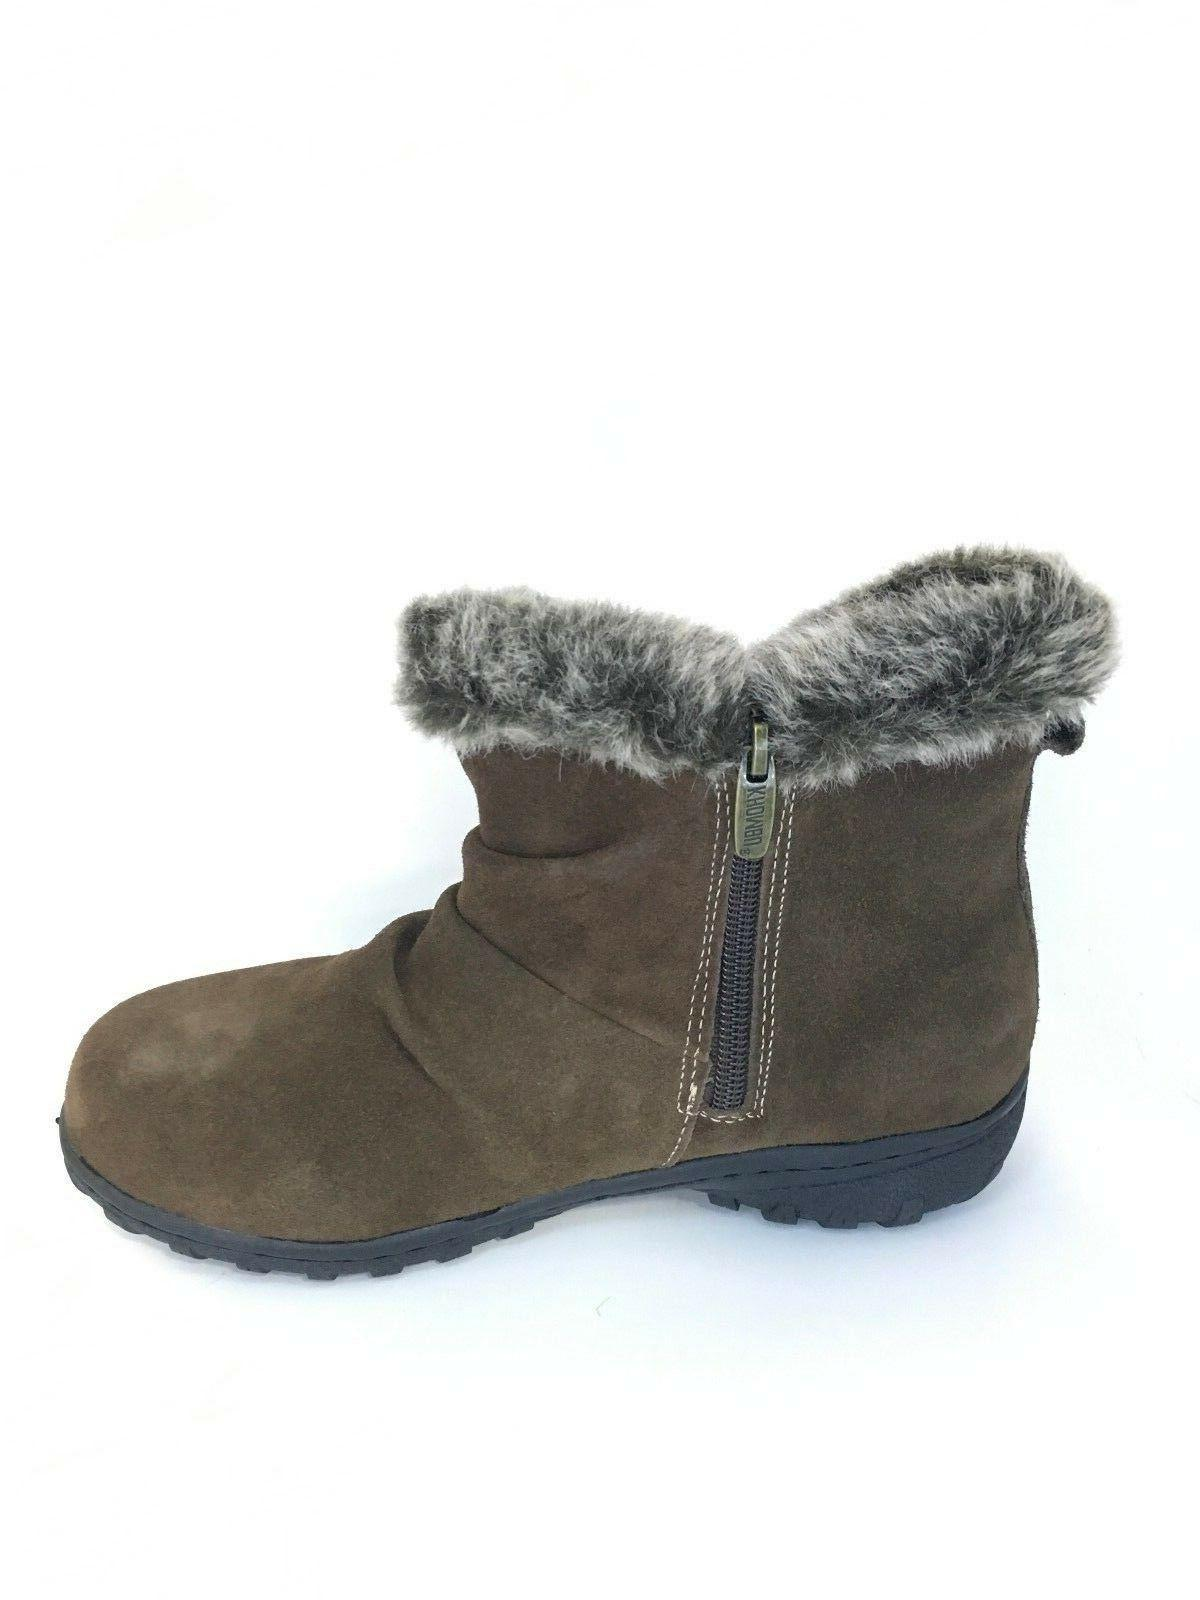 NEW Khombu Women's Lisa Winter Boots Brown Pick